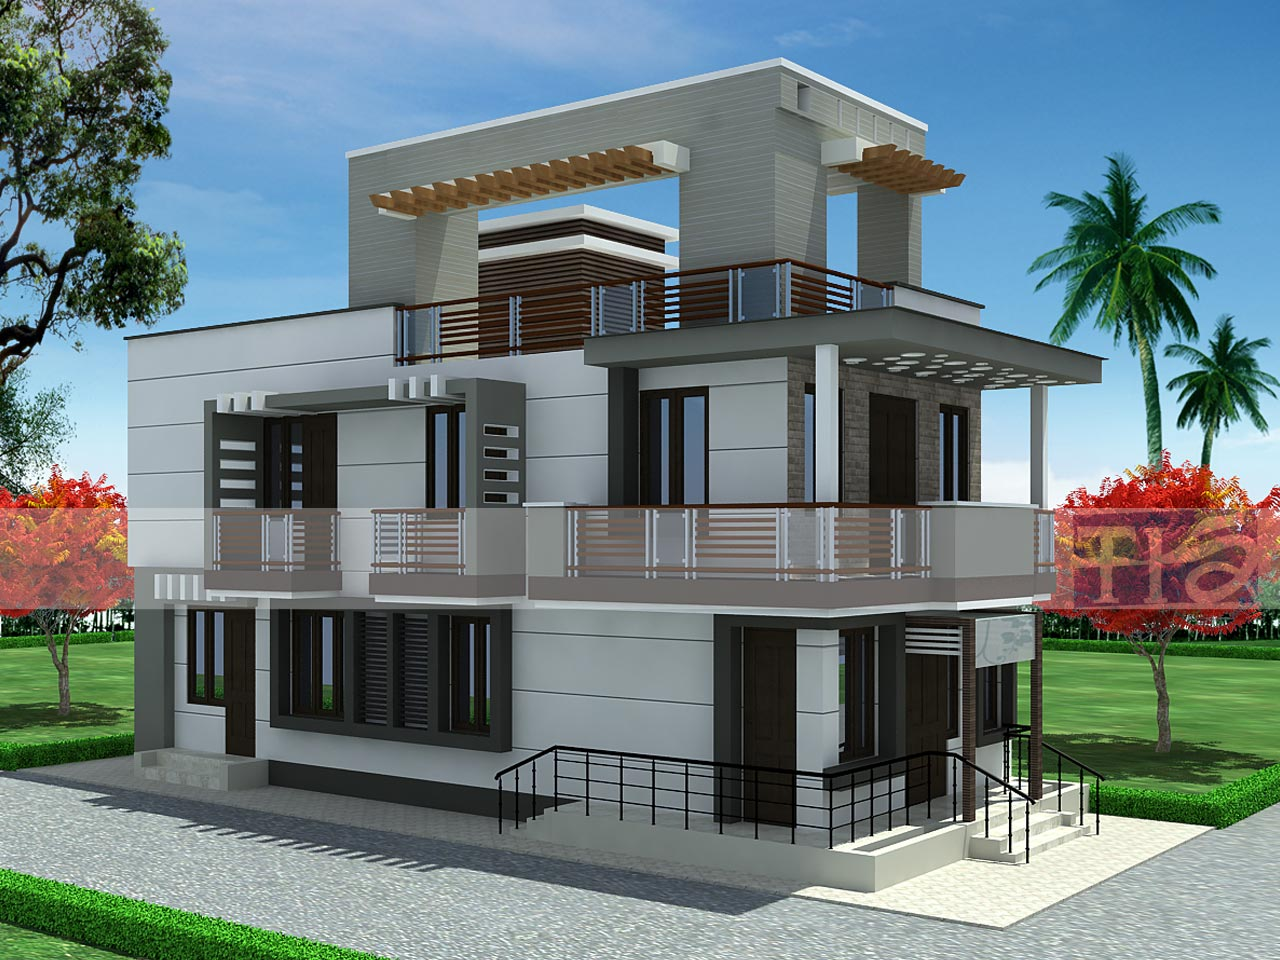 Exterior Design Endearing Inspiration Simply Simple